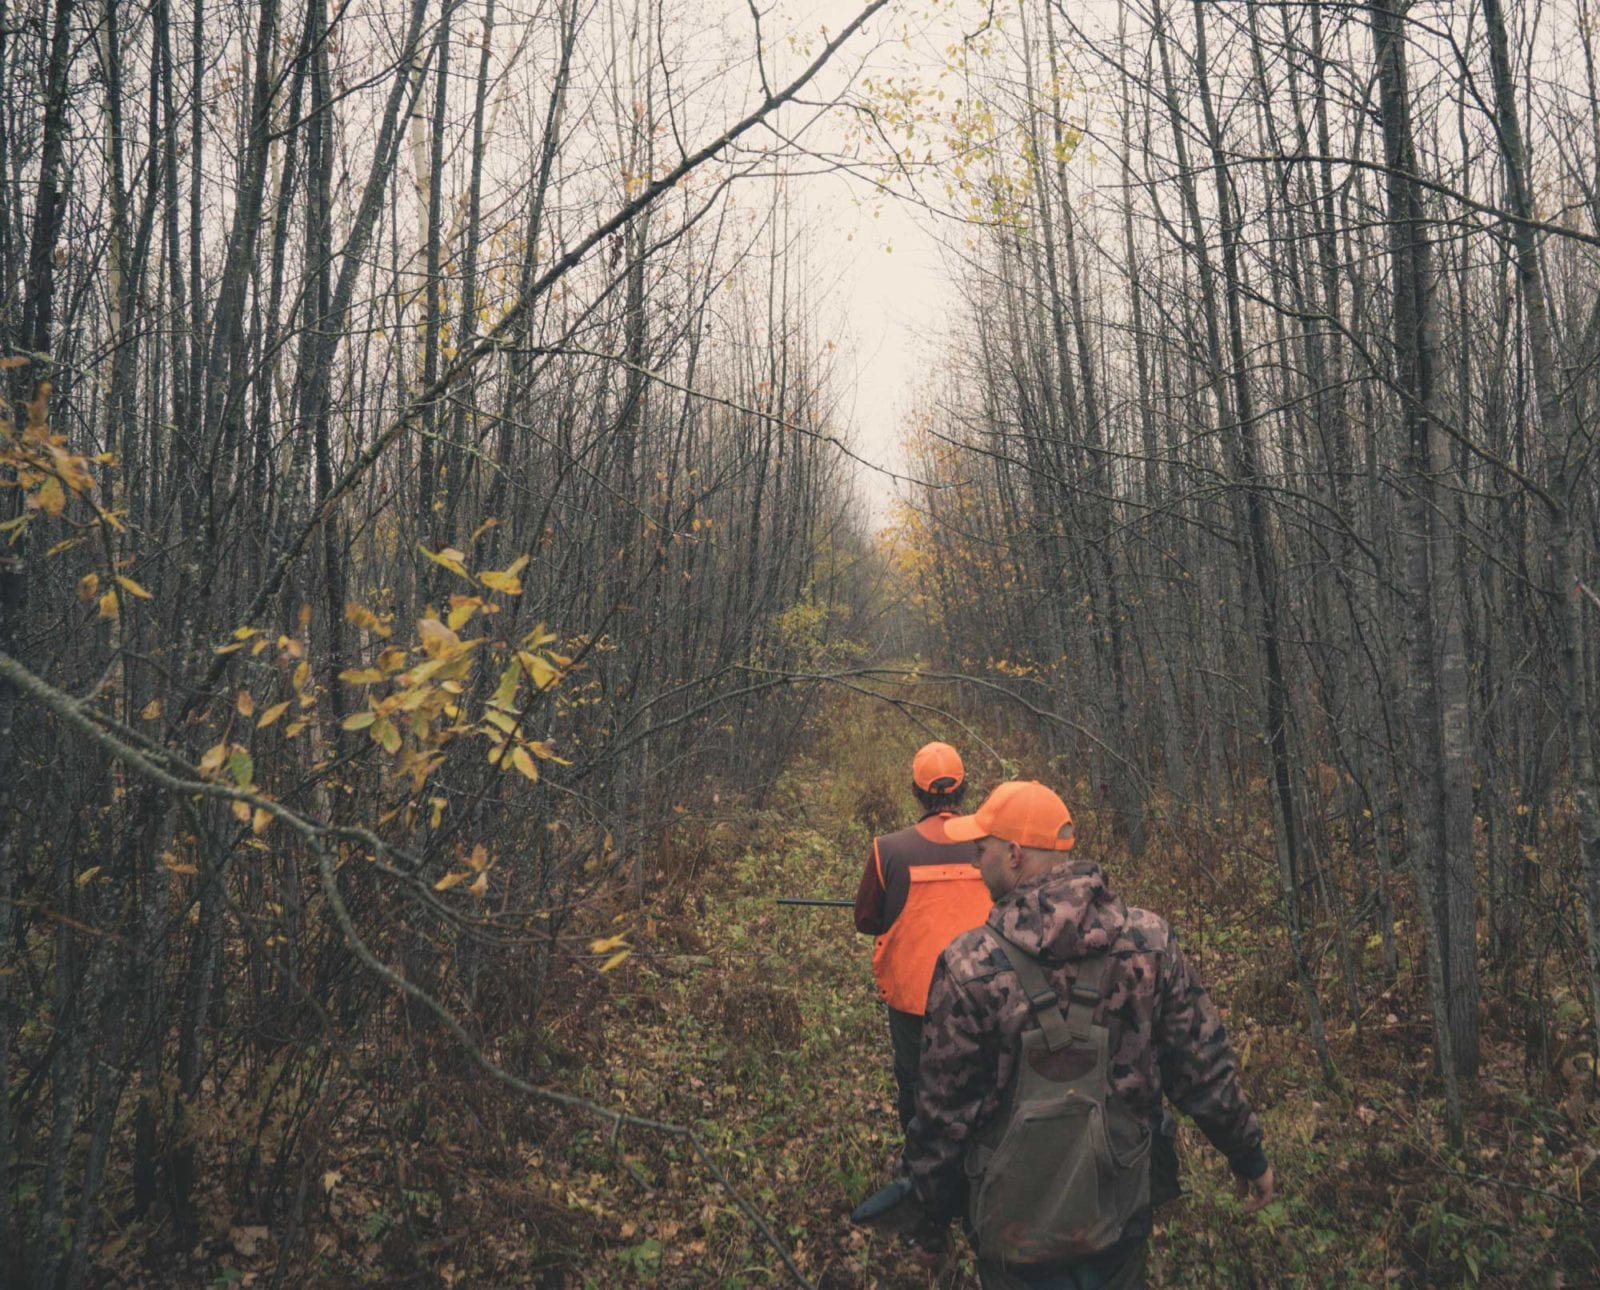 A group of bird hunters follow a dog through thick cover